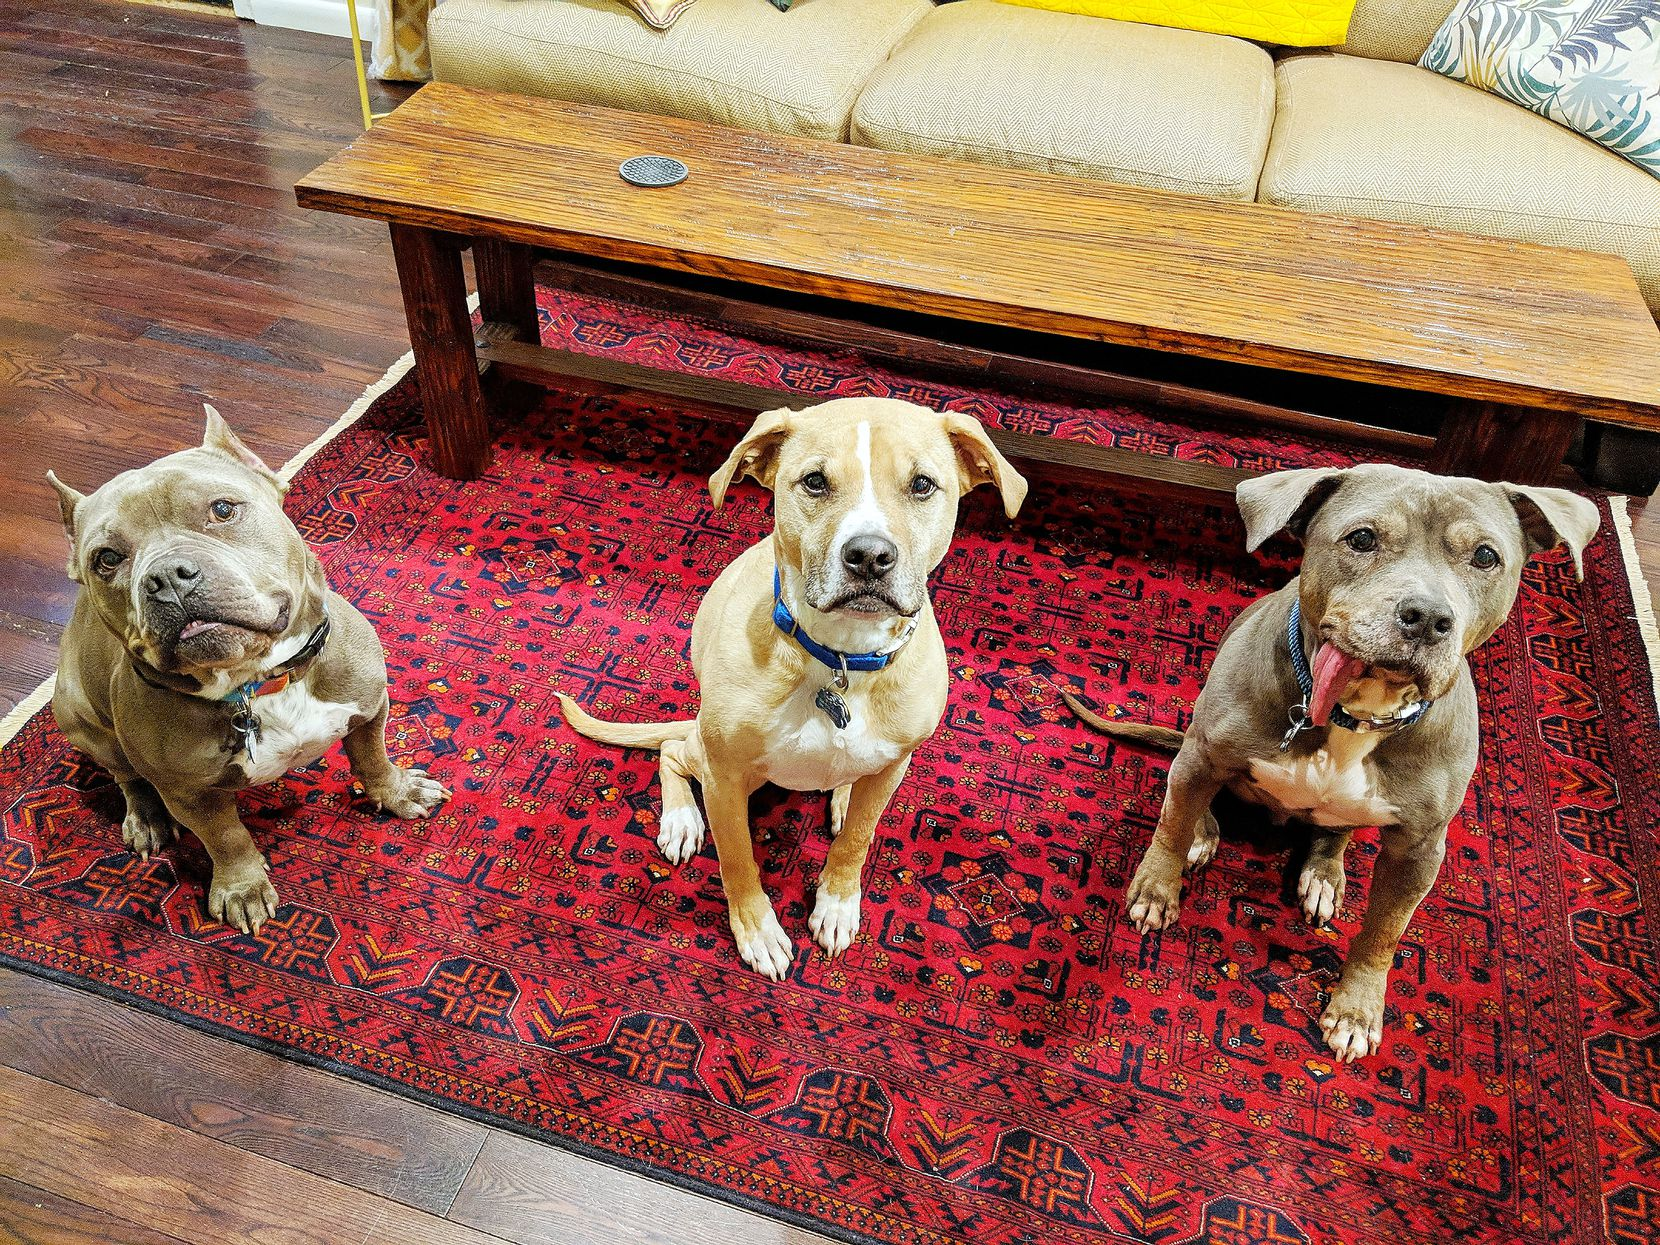 From left, Hippo, Wulo and Baboy, the three dogs that share Deborah Rodriguez's East Dallas home.